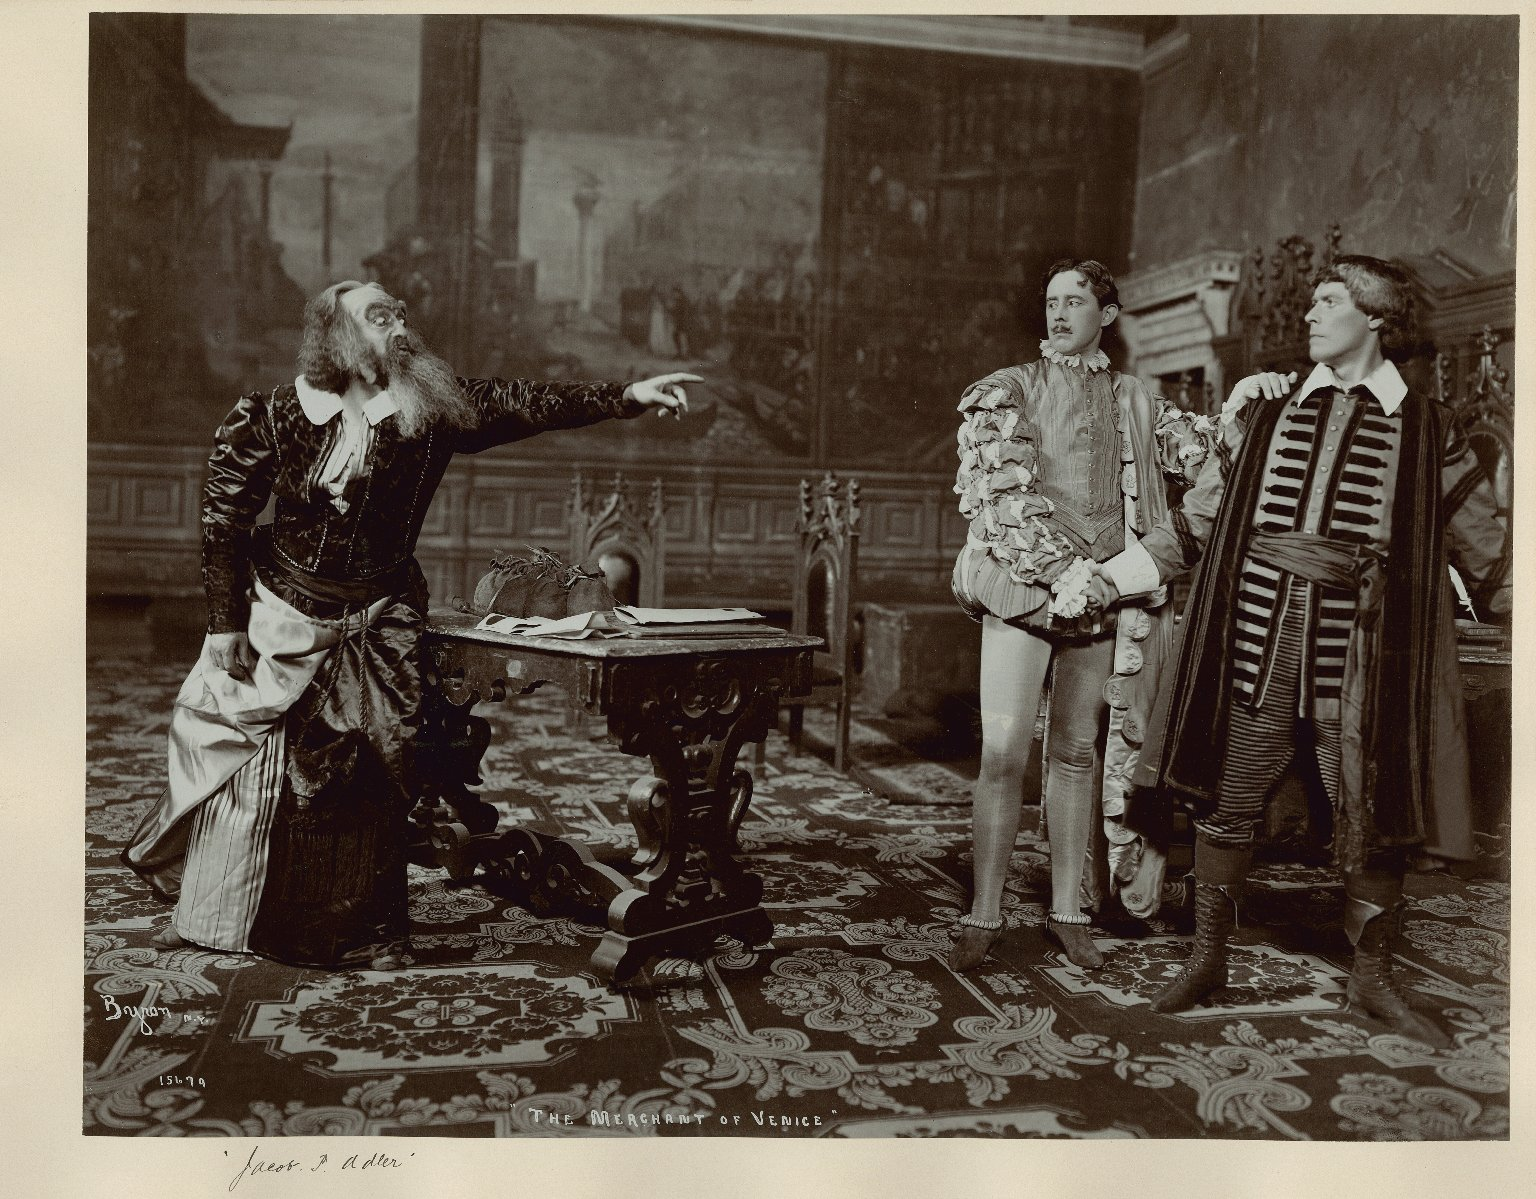 <b>Jacob Adler</b>     	</br>Jacob Adler as Shylock in a late 19th century performance of Shakespeare&#39;s Merchant of Venice.</br><br/><b>Source: </b><i>Public Domain. Folger Shakespeare Library Digital Image Collection http://luna.folger.edu/luna/servlet/s/y194rs